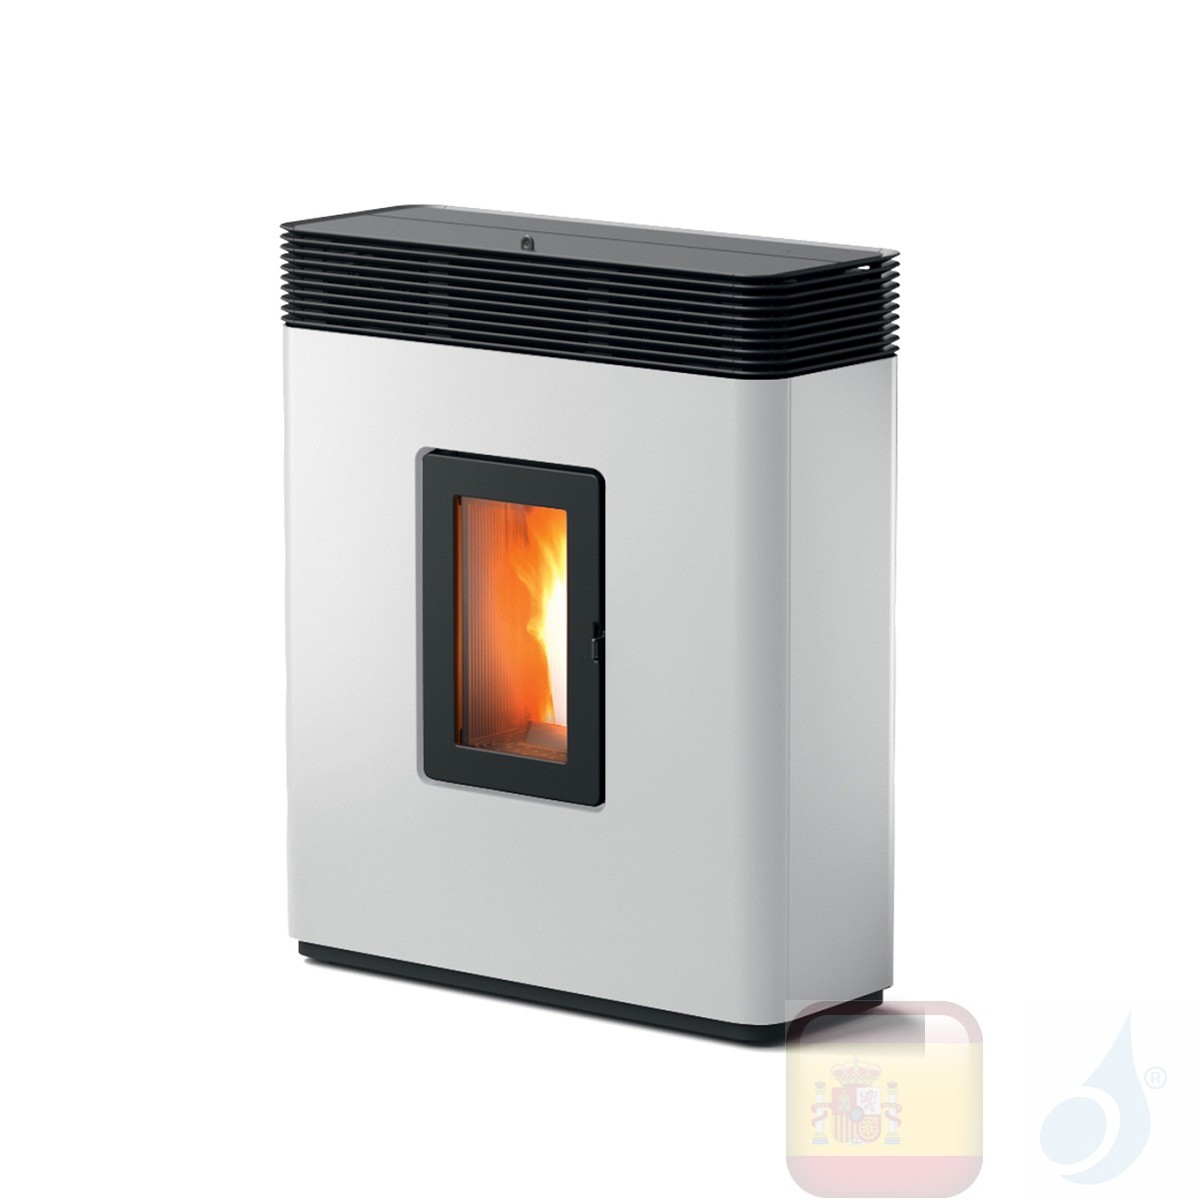 Estufa de pellets MCZ 13.8 kW Philo Comfort Air 14 M1 metal Blanco